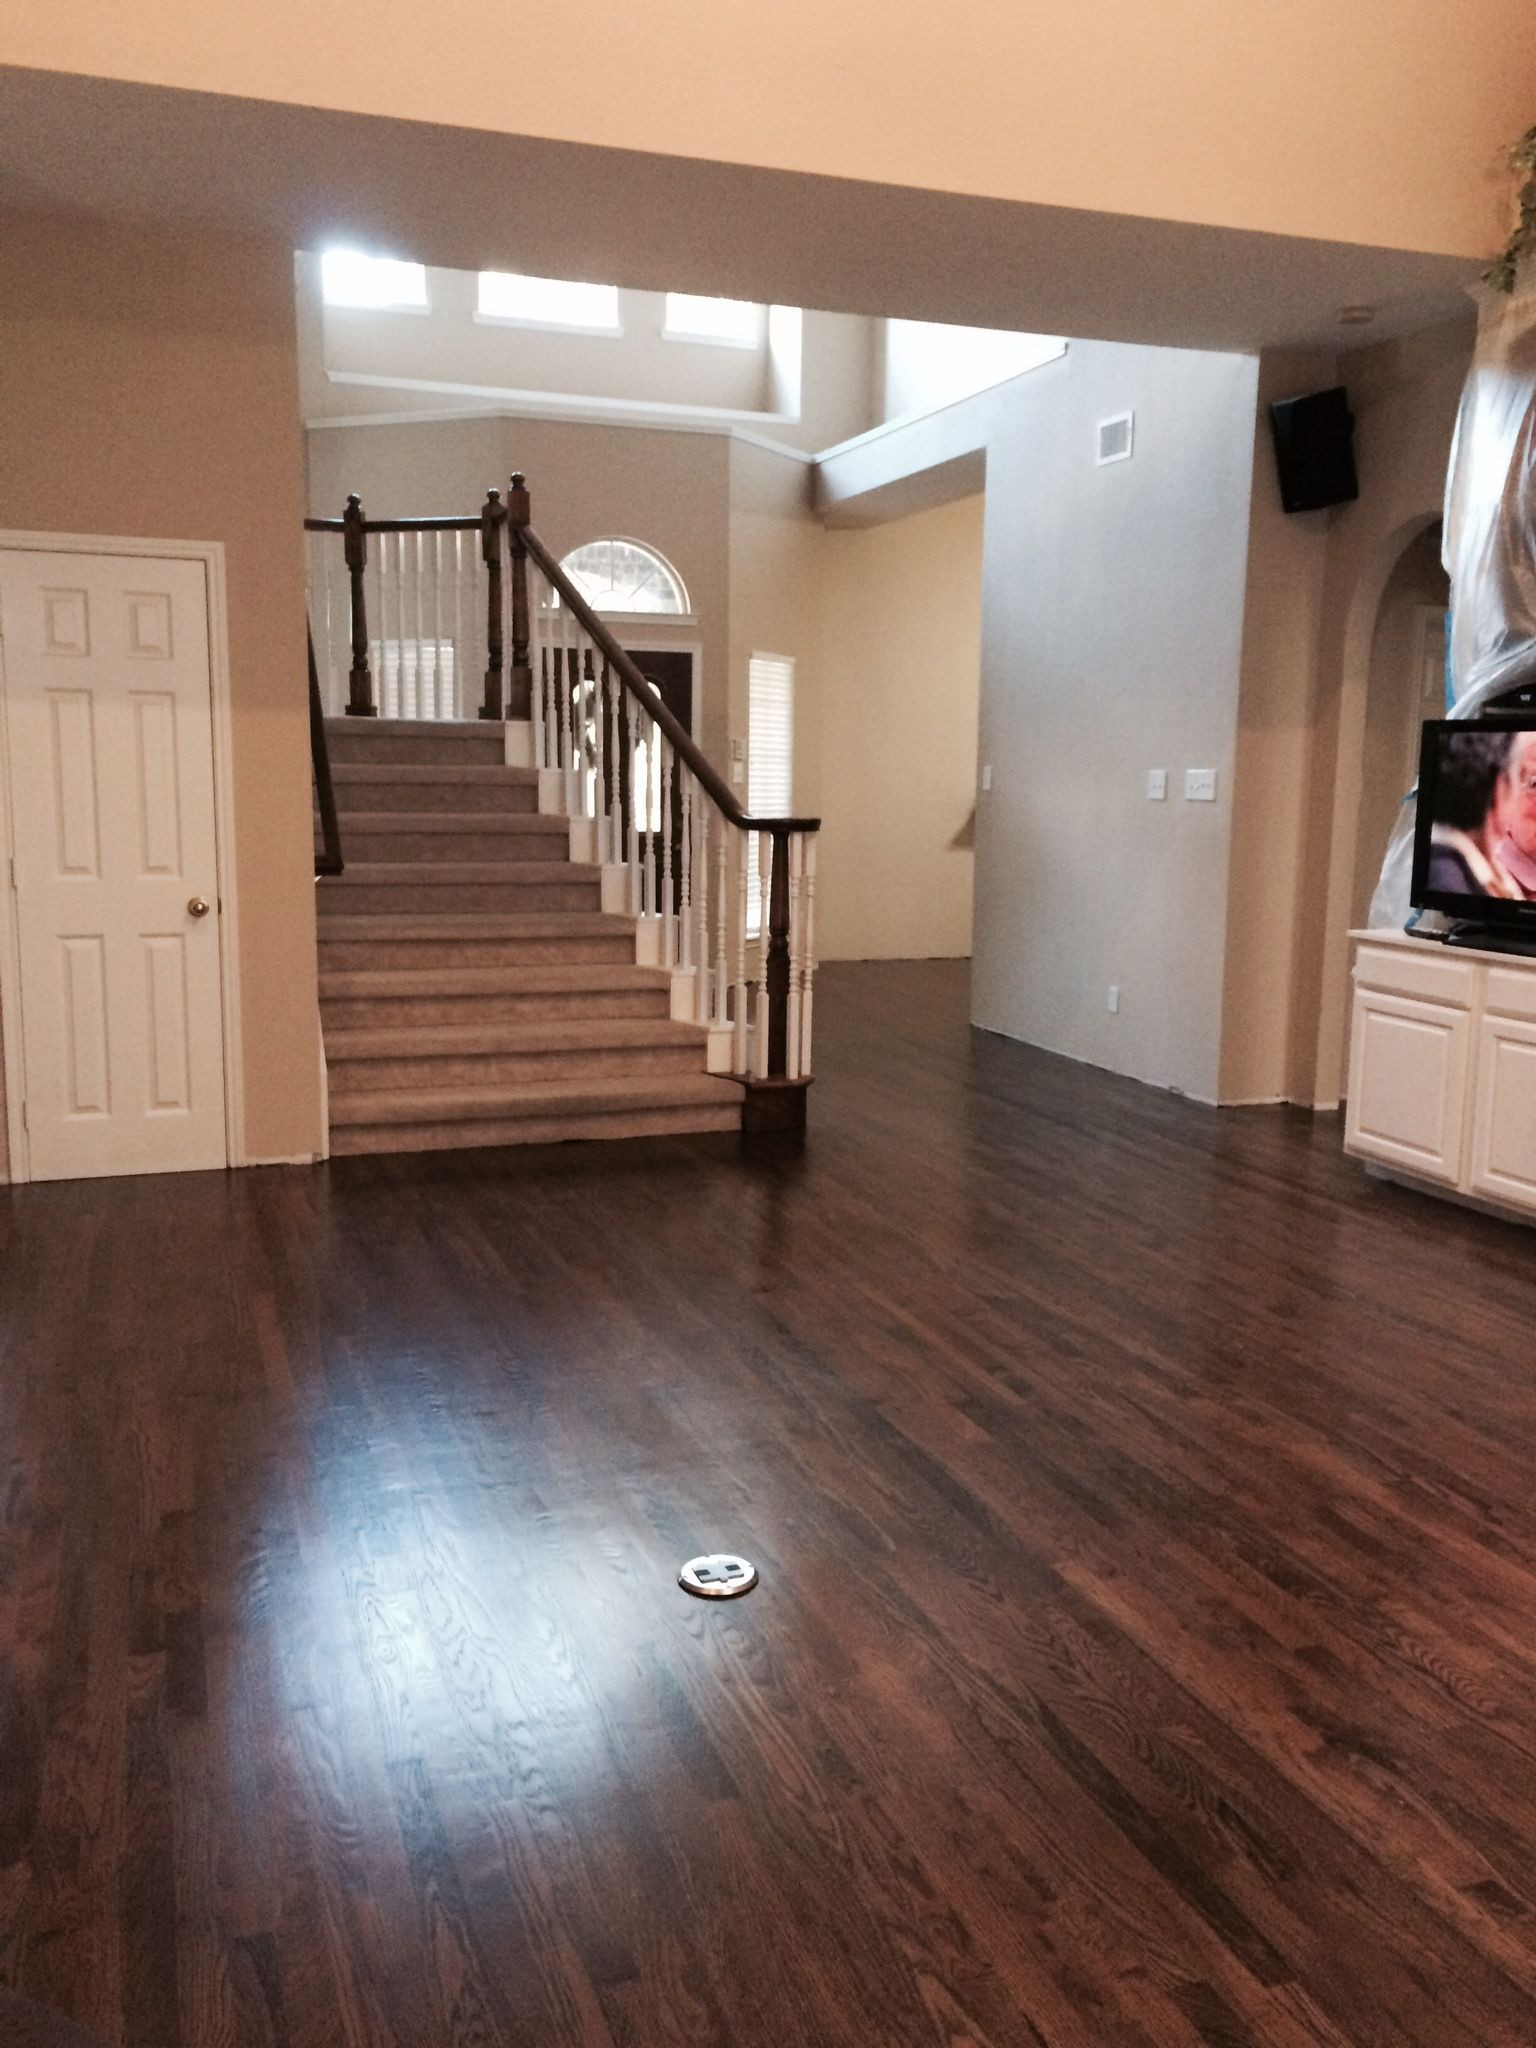 refinishing hardwood floors after carpet of dark walnut stain on white oak hardwood remodel 1floors in 2018 intended for dark walnut stain on white oak hardwood walnut hardwood flooring hardwood floor stain colors